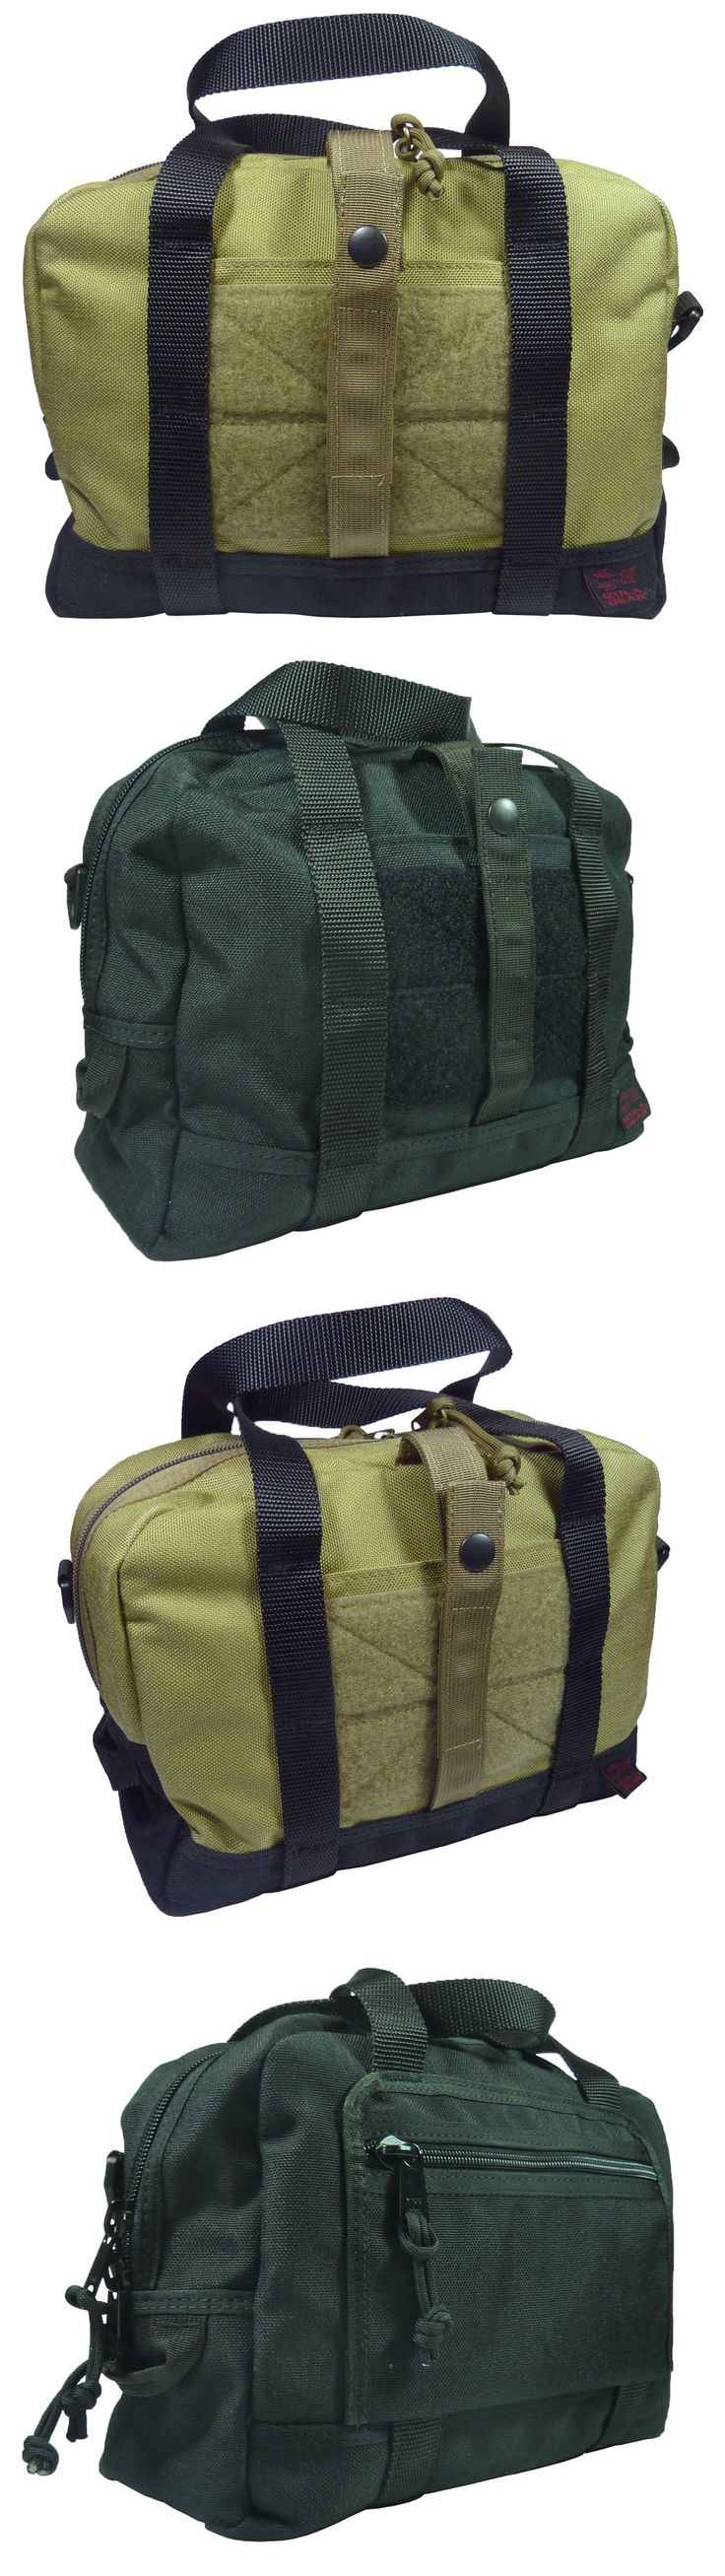 Range Gear 177905: Esee Range Bag With Shoulder Strap Izula Gear For Shooting Equipment And Pistol -> BUY IT NOW ONLY: $129.99 on eBay!